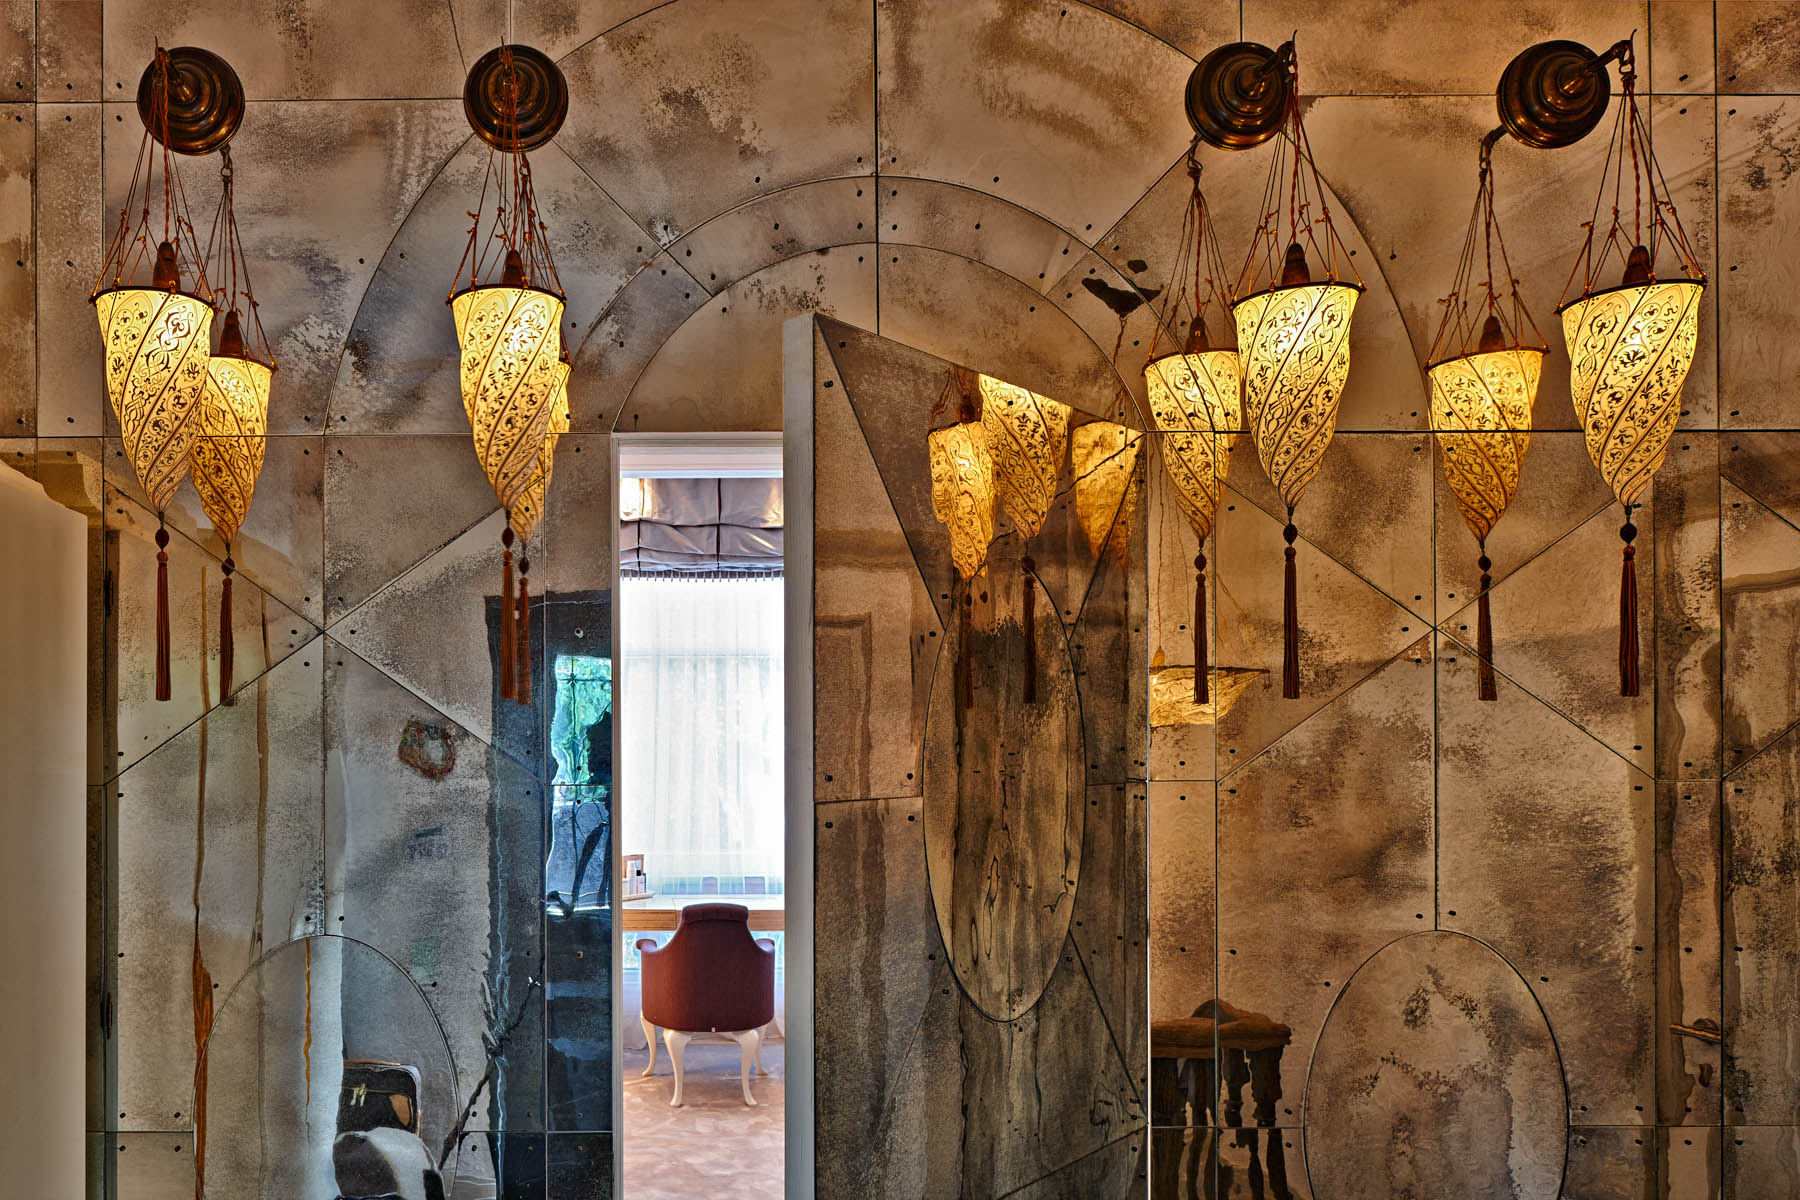 Detail of landing area in Private House in Èze with Moroccan style lanterns and distessed mirrored wall and door